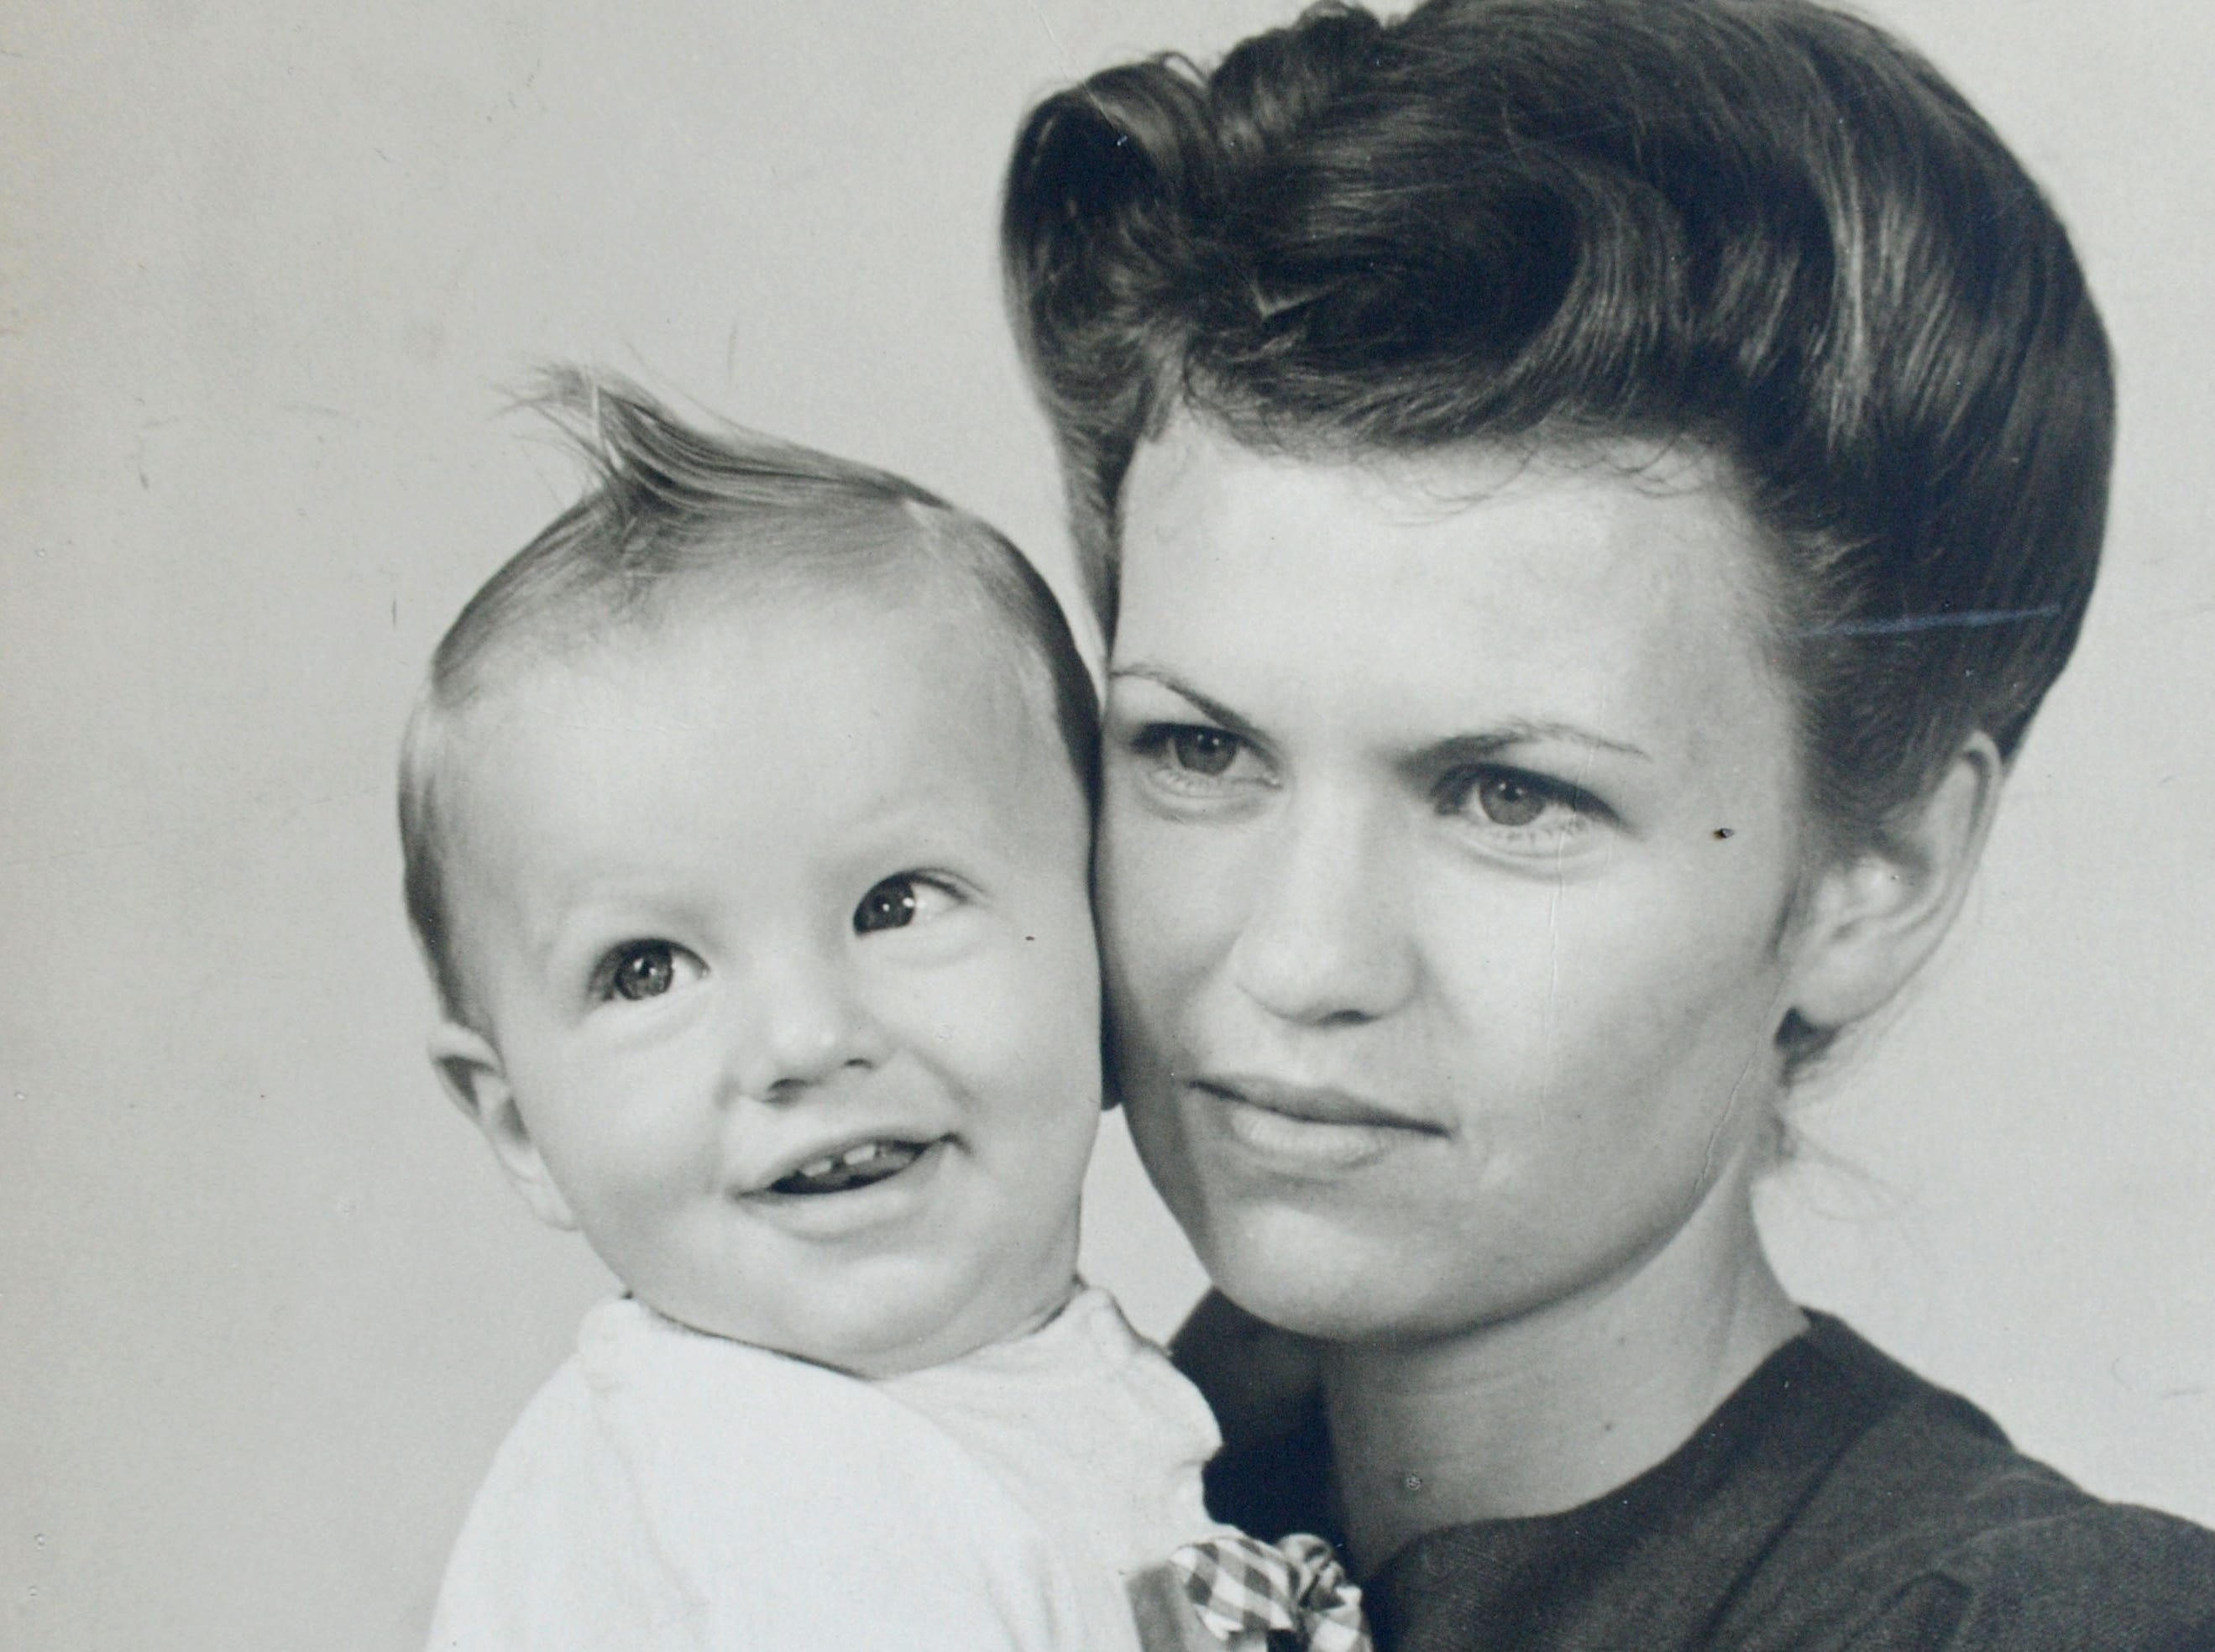 Gladys Fleckenstein, now of Camarillo, is pictured with her son Larry J. Stevens. He would go on to serve in the U.S. Navy. The fighter pilot was shot down over Laos on Valentine's Day 1969.